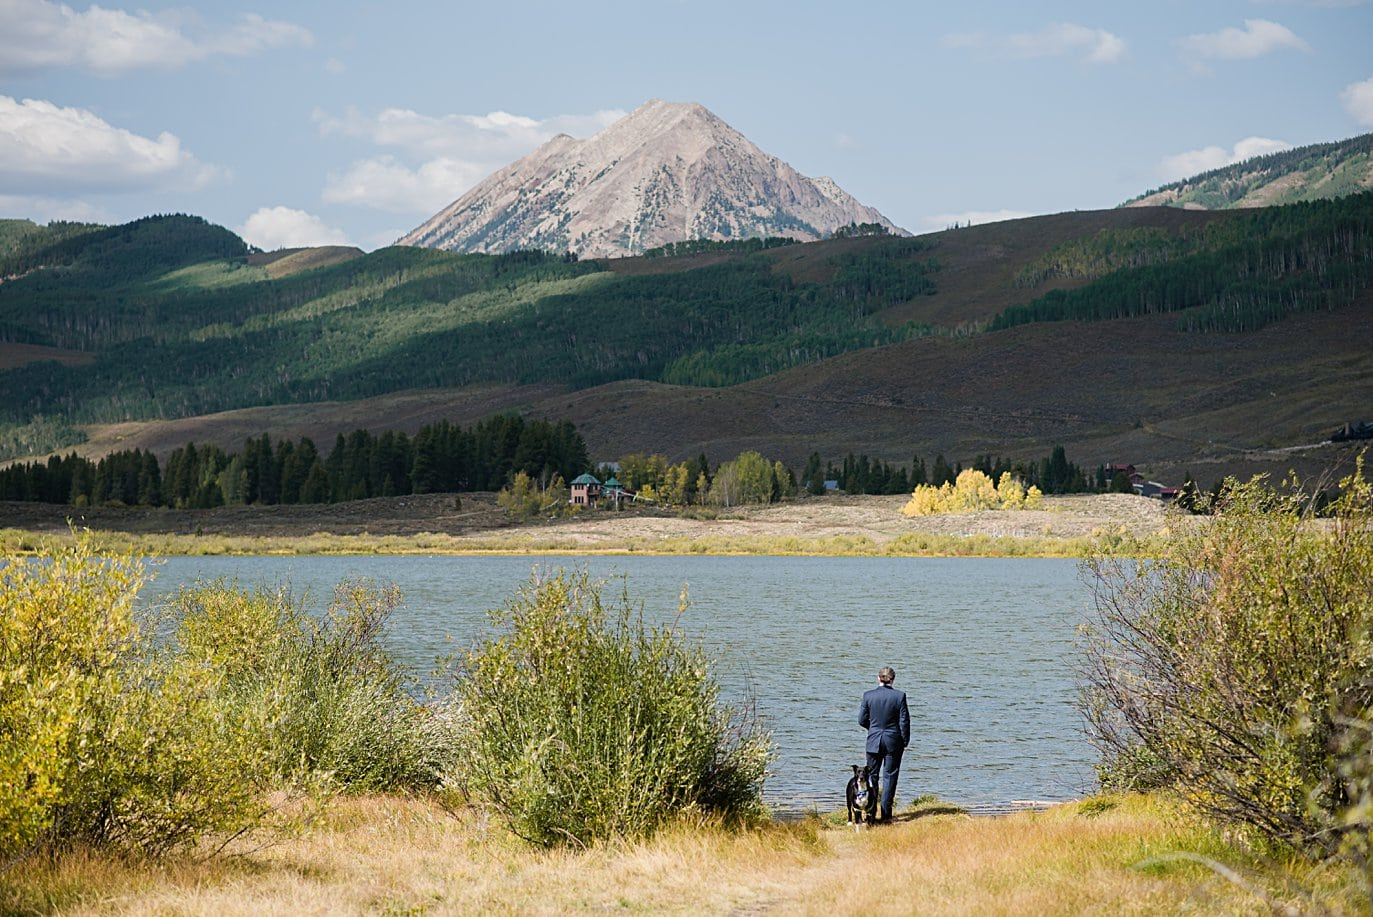 first look at Peanut Lake at Crested Butte Elopement by Crested Butte elopement photographer Jennie Crate